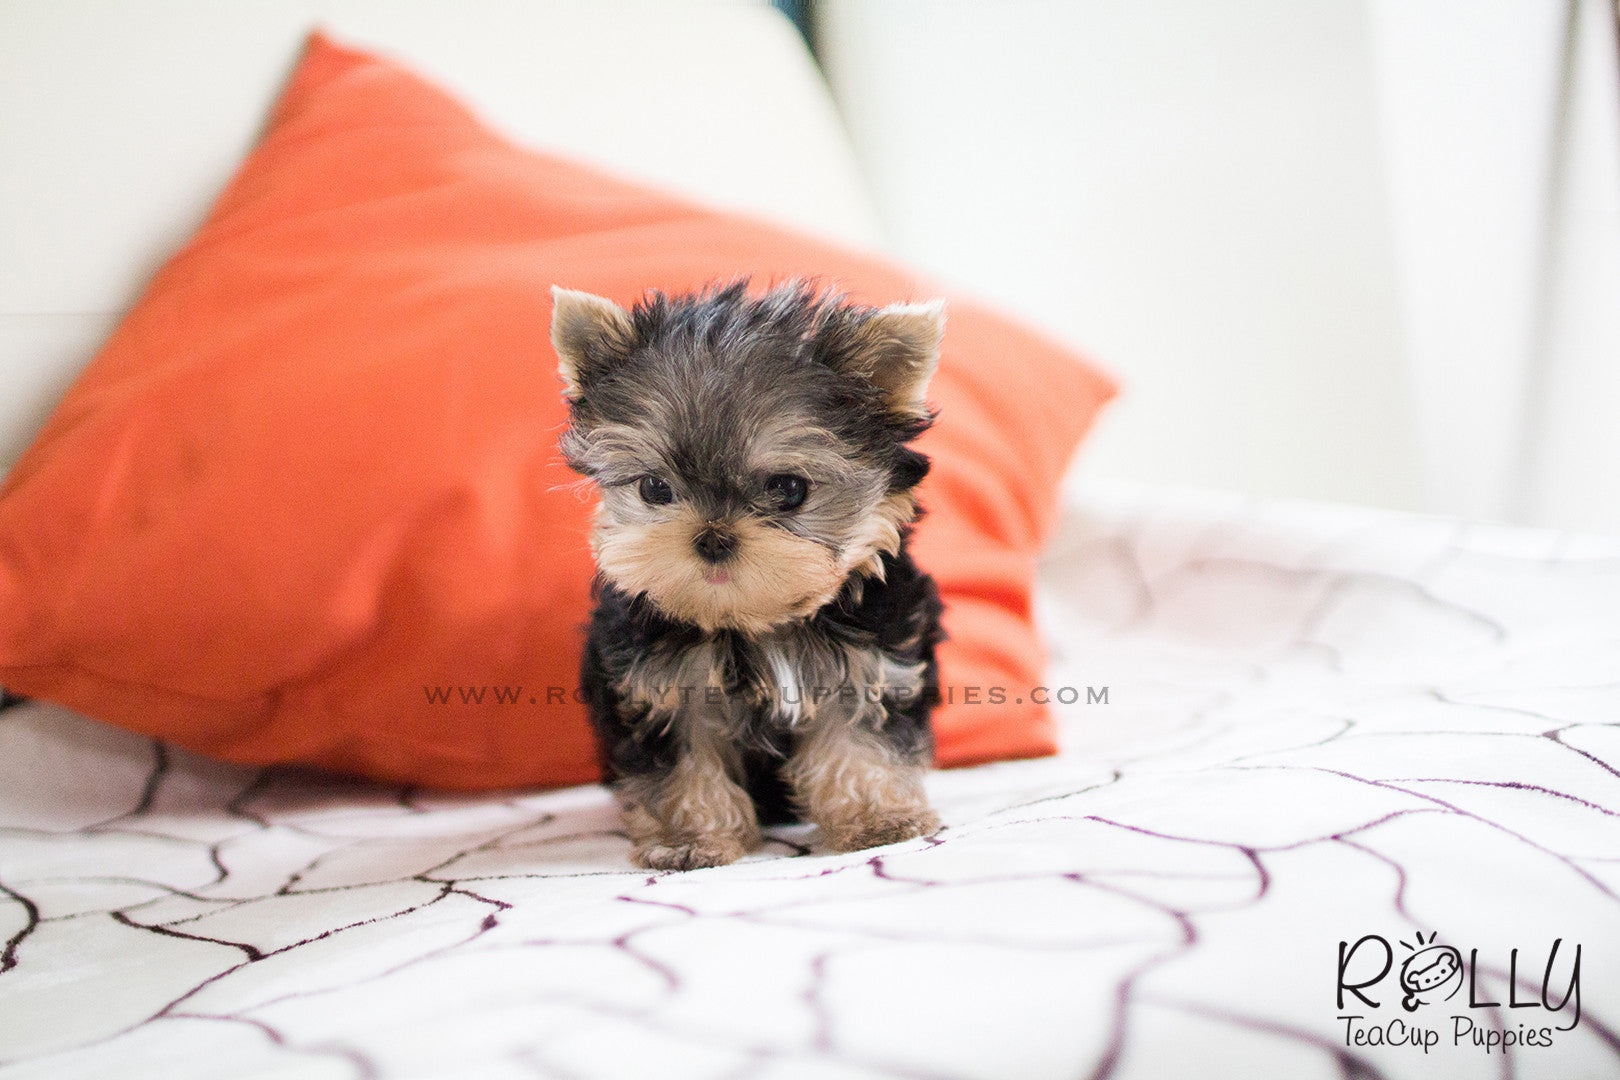 American Express Near Me >> Carter - Yorkie. M– Rolly Teacup Puppies